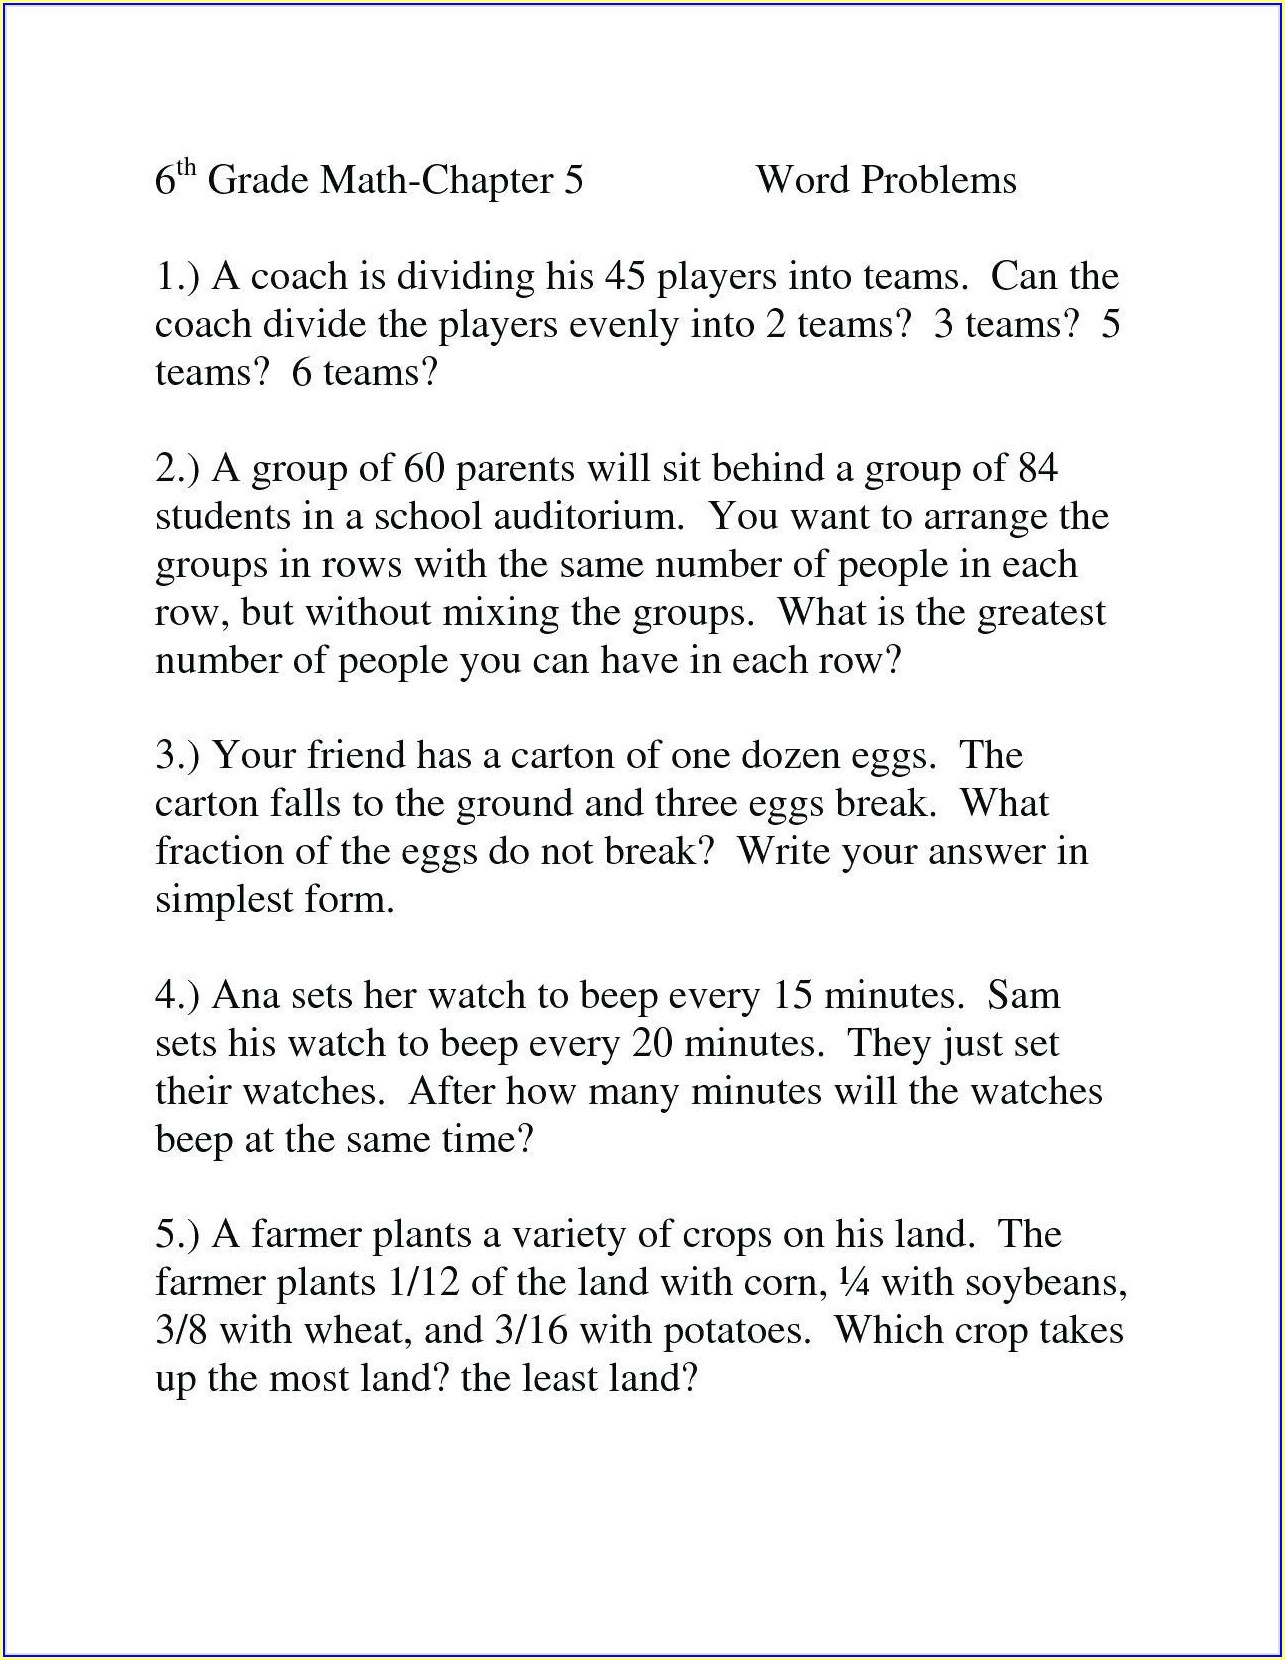 Third Grade Math Worksheets Grade 3 Word Problems